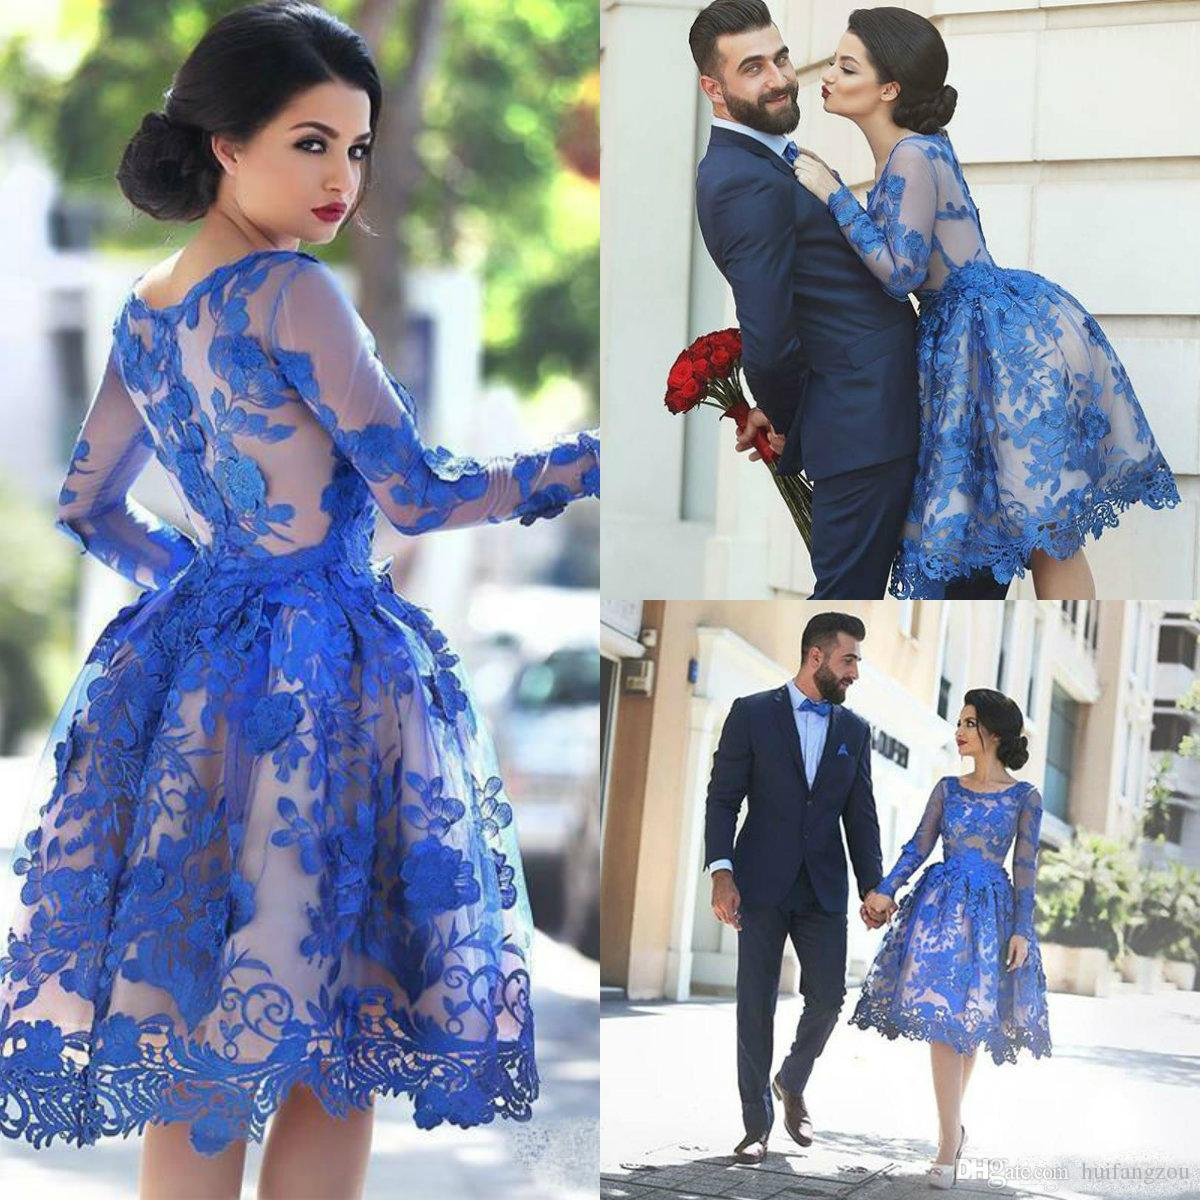 de064c7ca1f 2019 Royal Blue Lace Applique Short Prom Dresses Illusion Long Sleeve  Cocktail Party Dresses Knee Length Homecoming Prom Gowns Vestidos Prom  Dresses Online ...